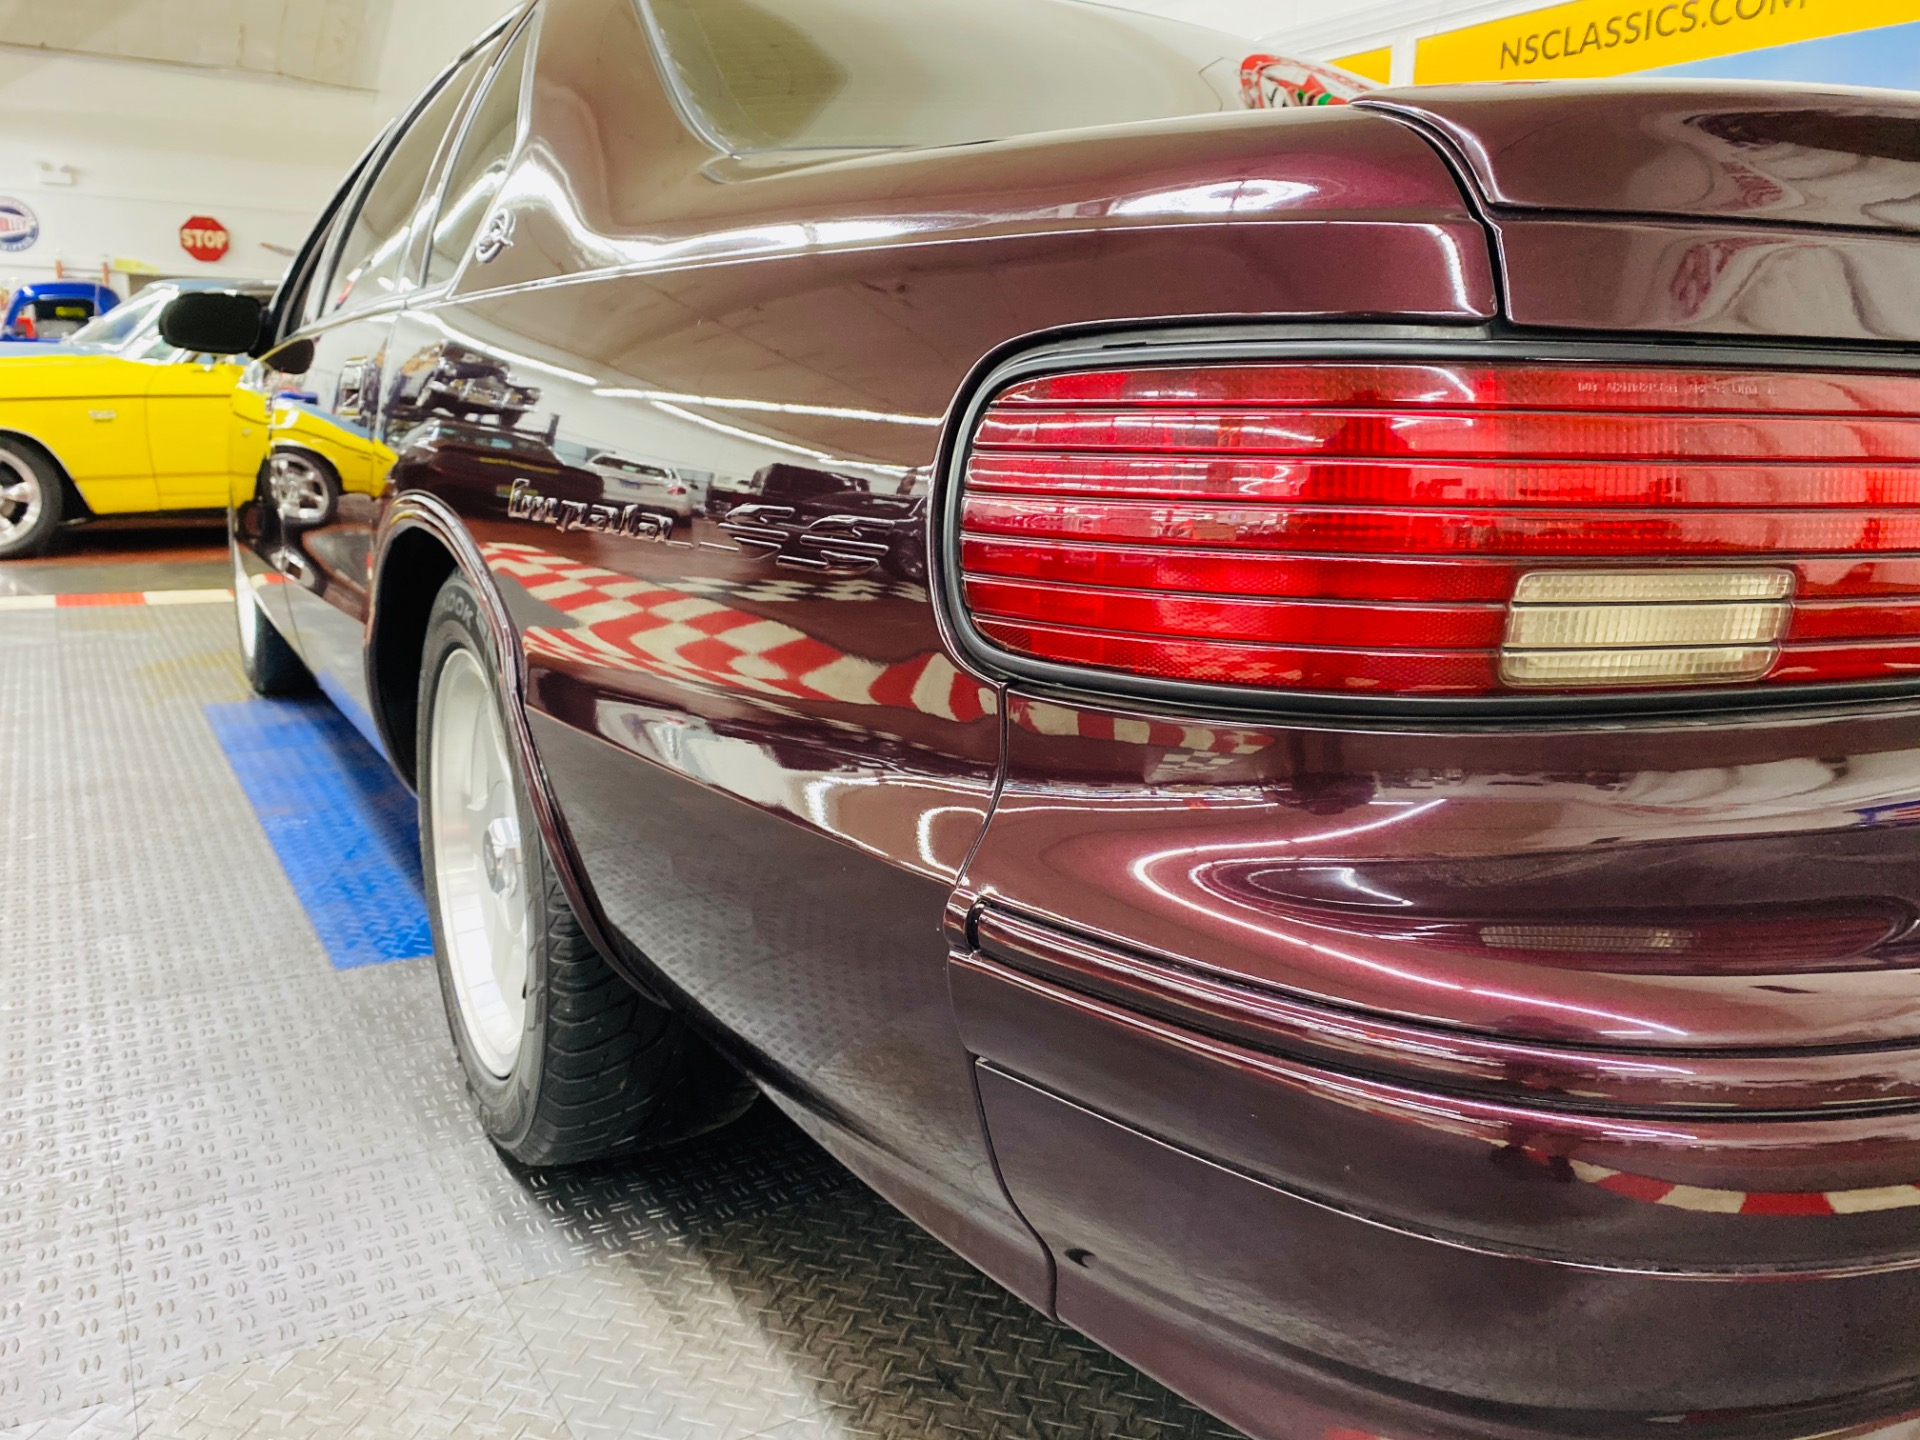 Used 1996 Chevrolet Impala -SS - VERY CLEAN BODY - LOW MILES - SEE VIDEO | Mundelein, IL